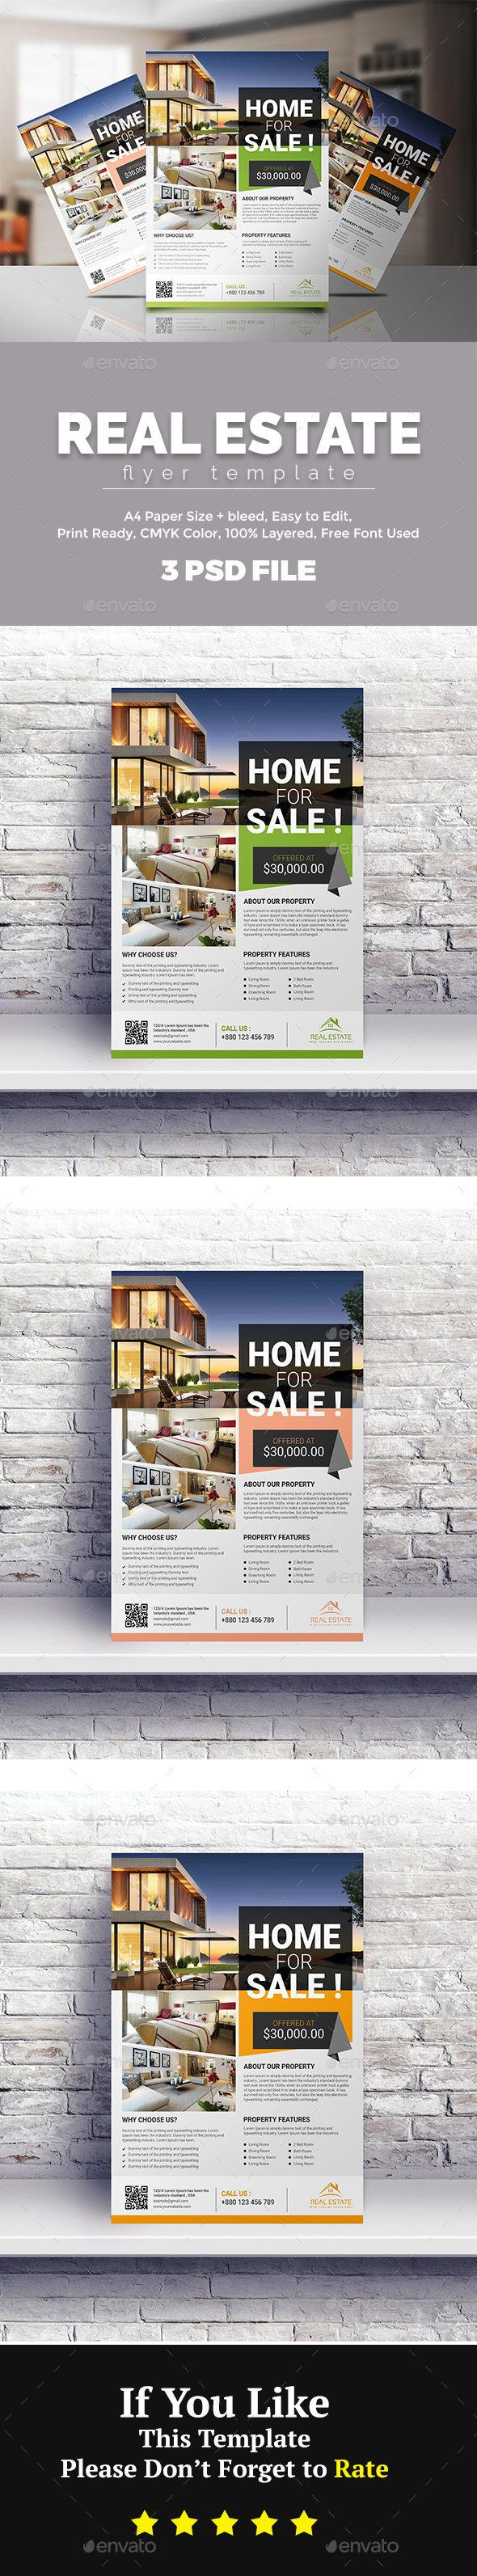 Real Estate Template%0A Real Estate Flyer